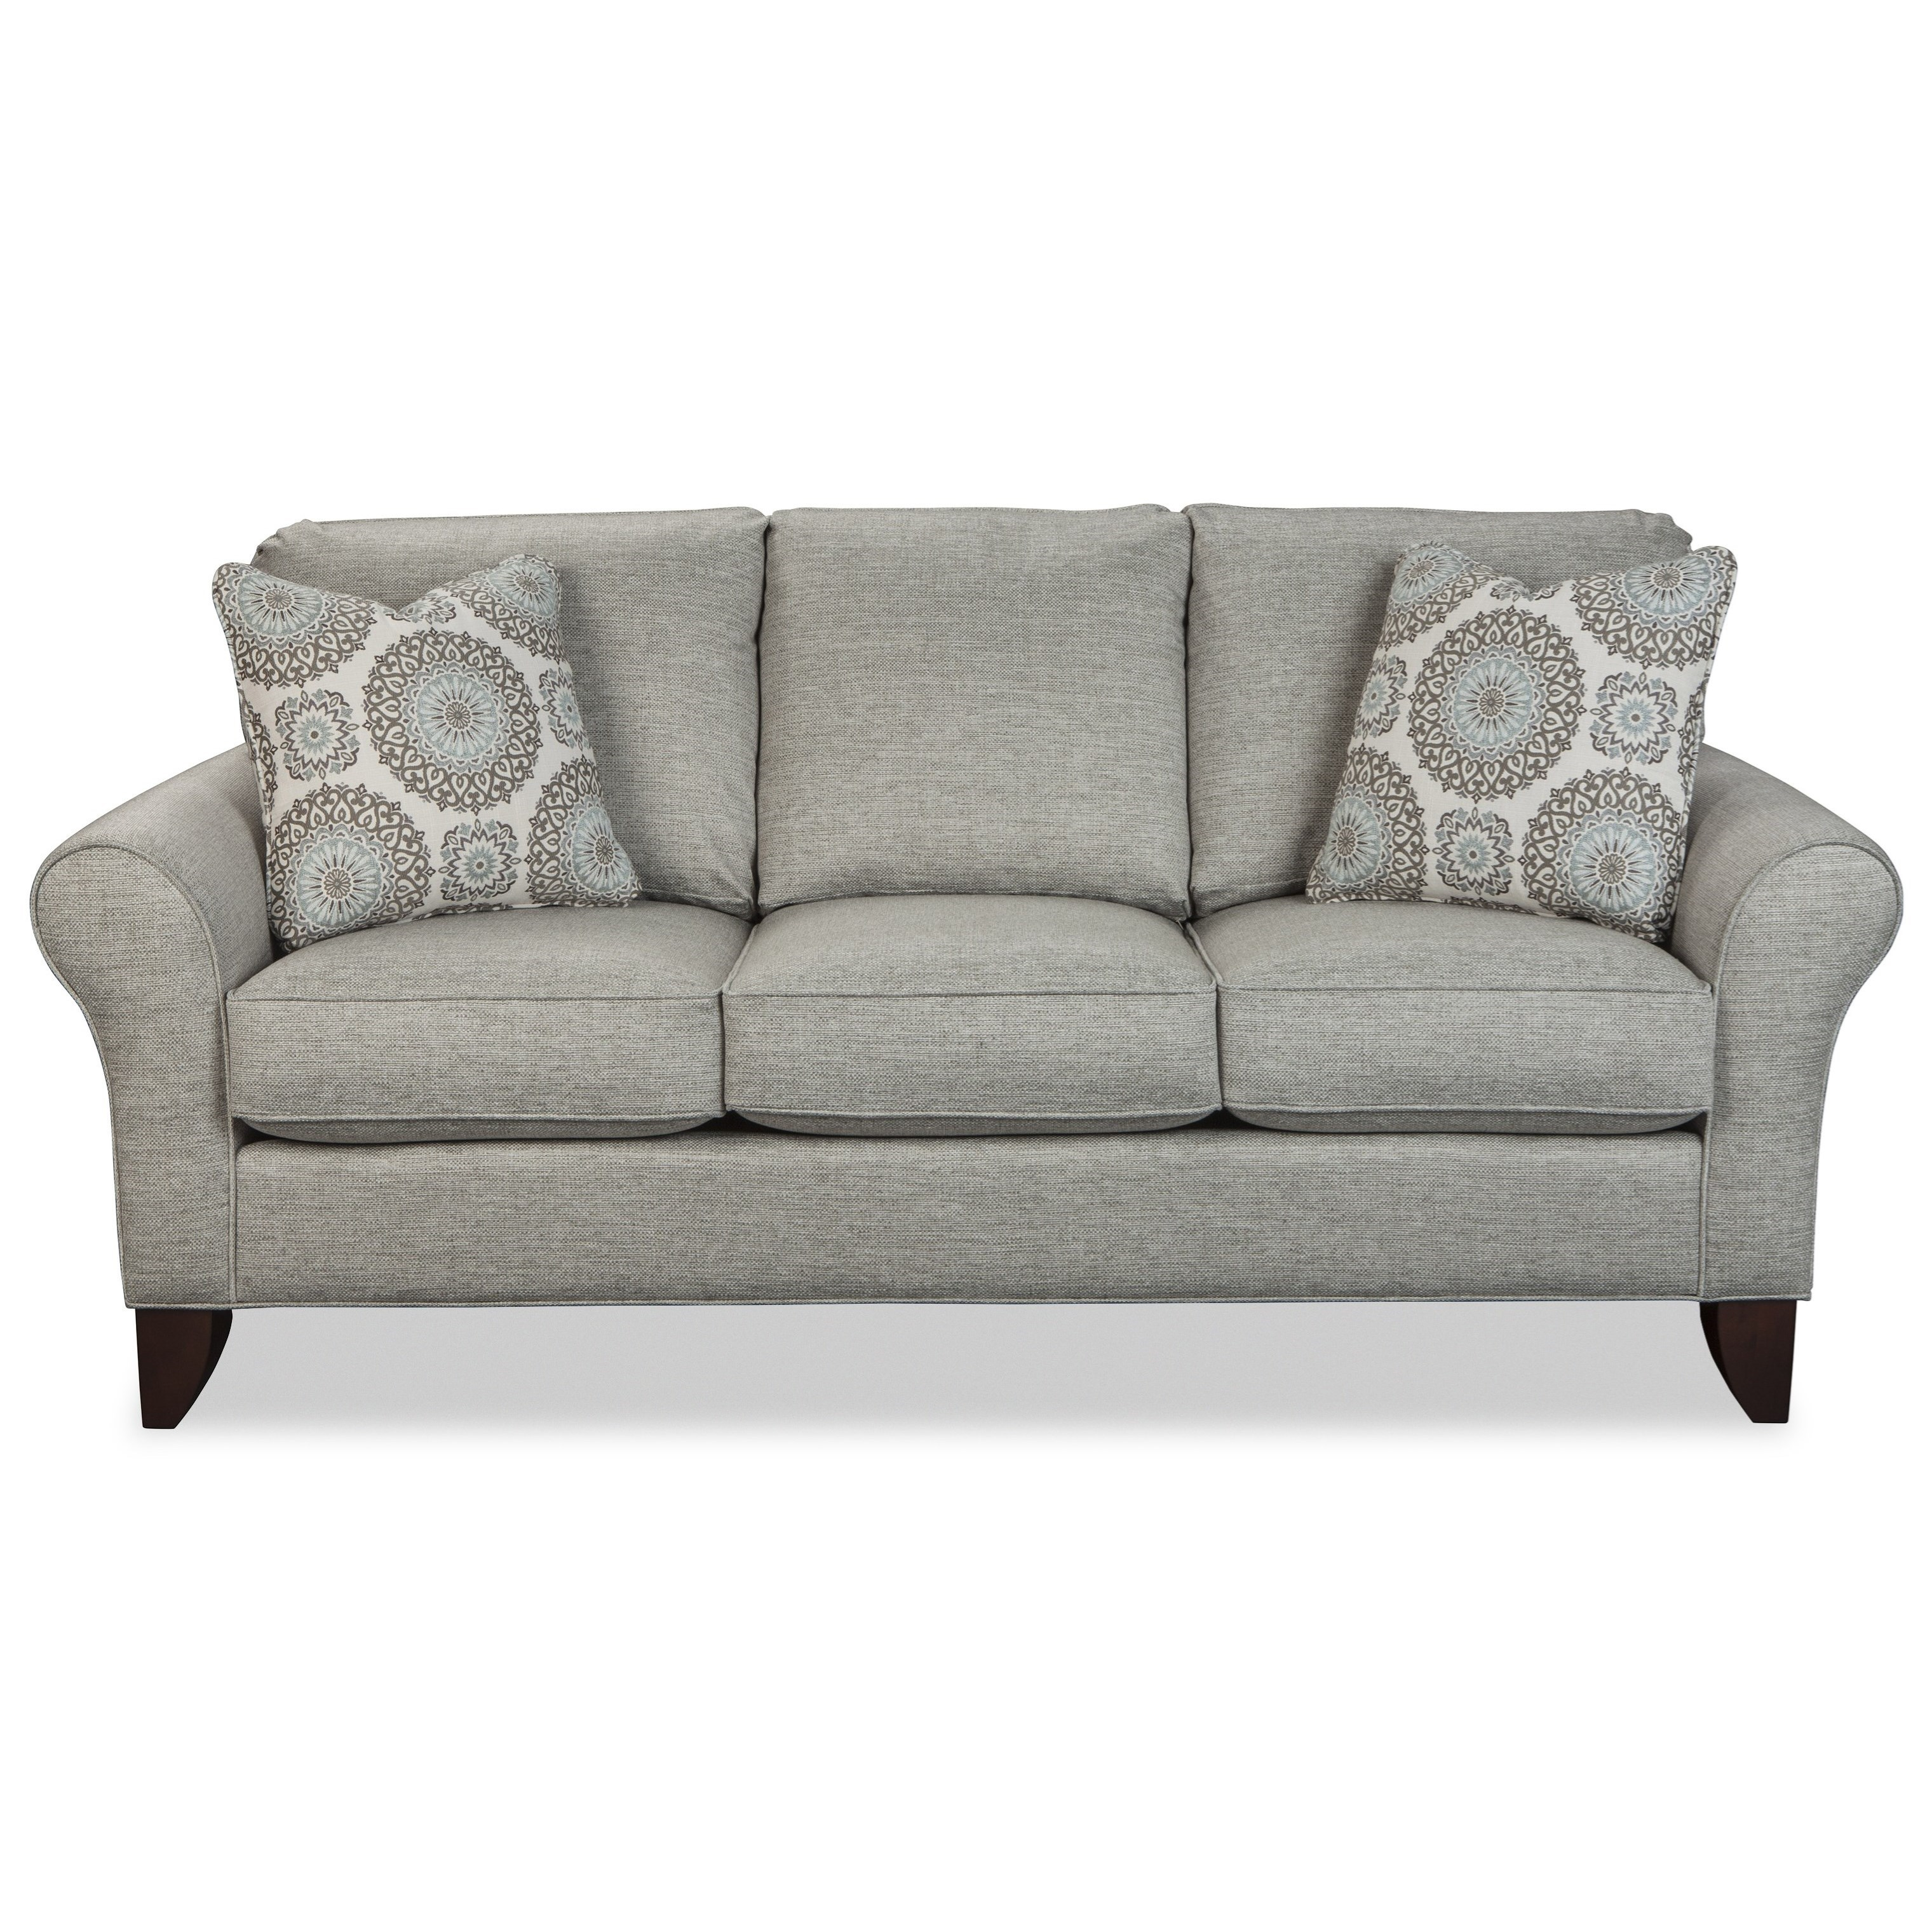 Transitional Small Scale Sofa by Craftmaster